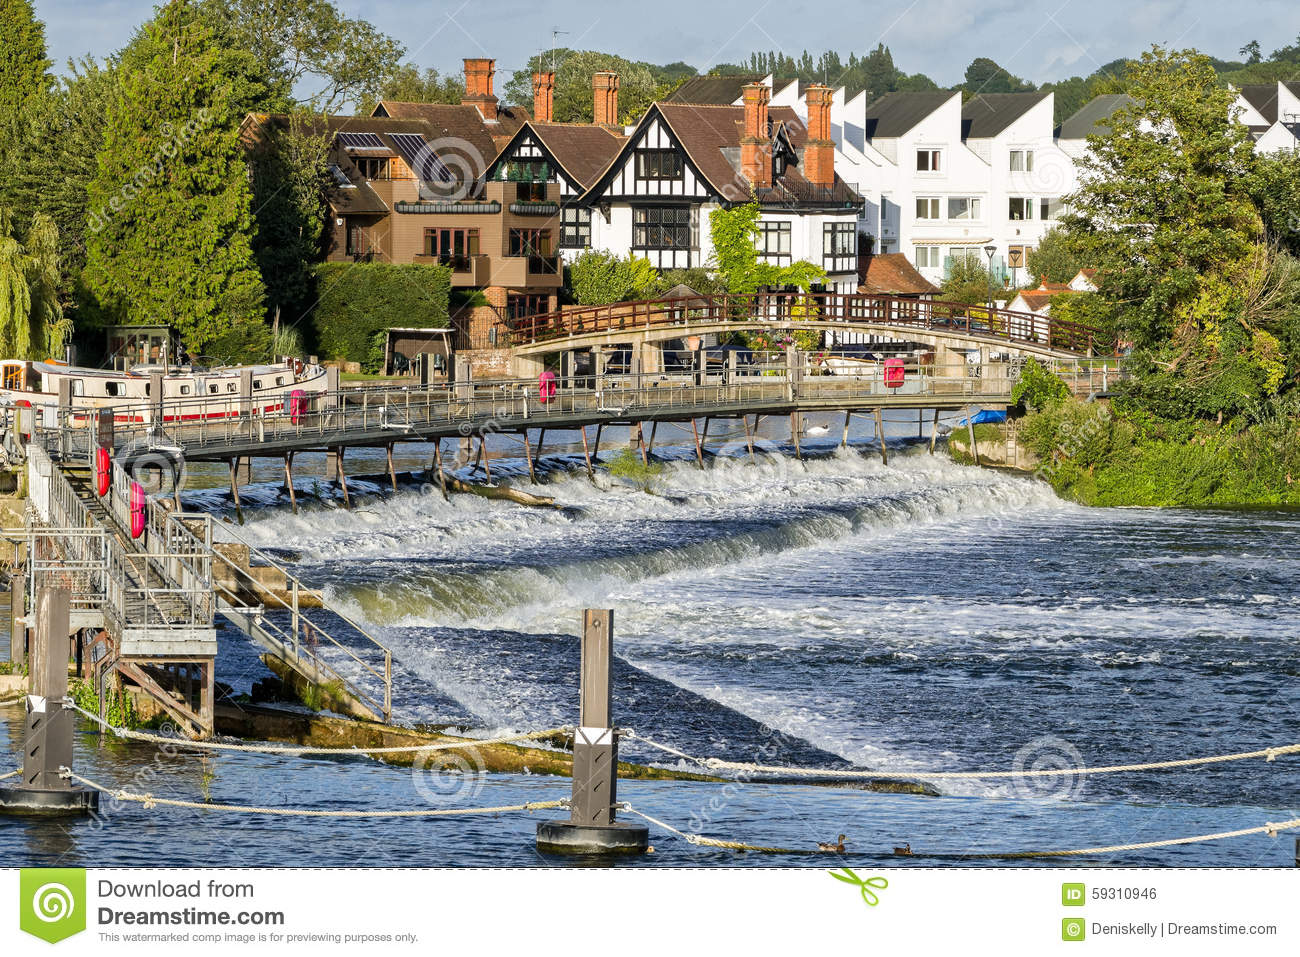 Marlow on the River Thames, England